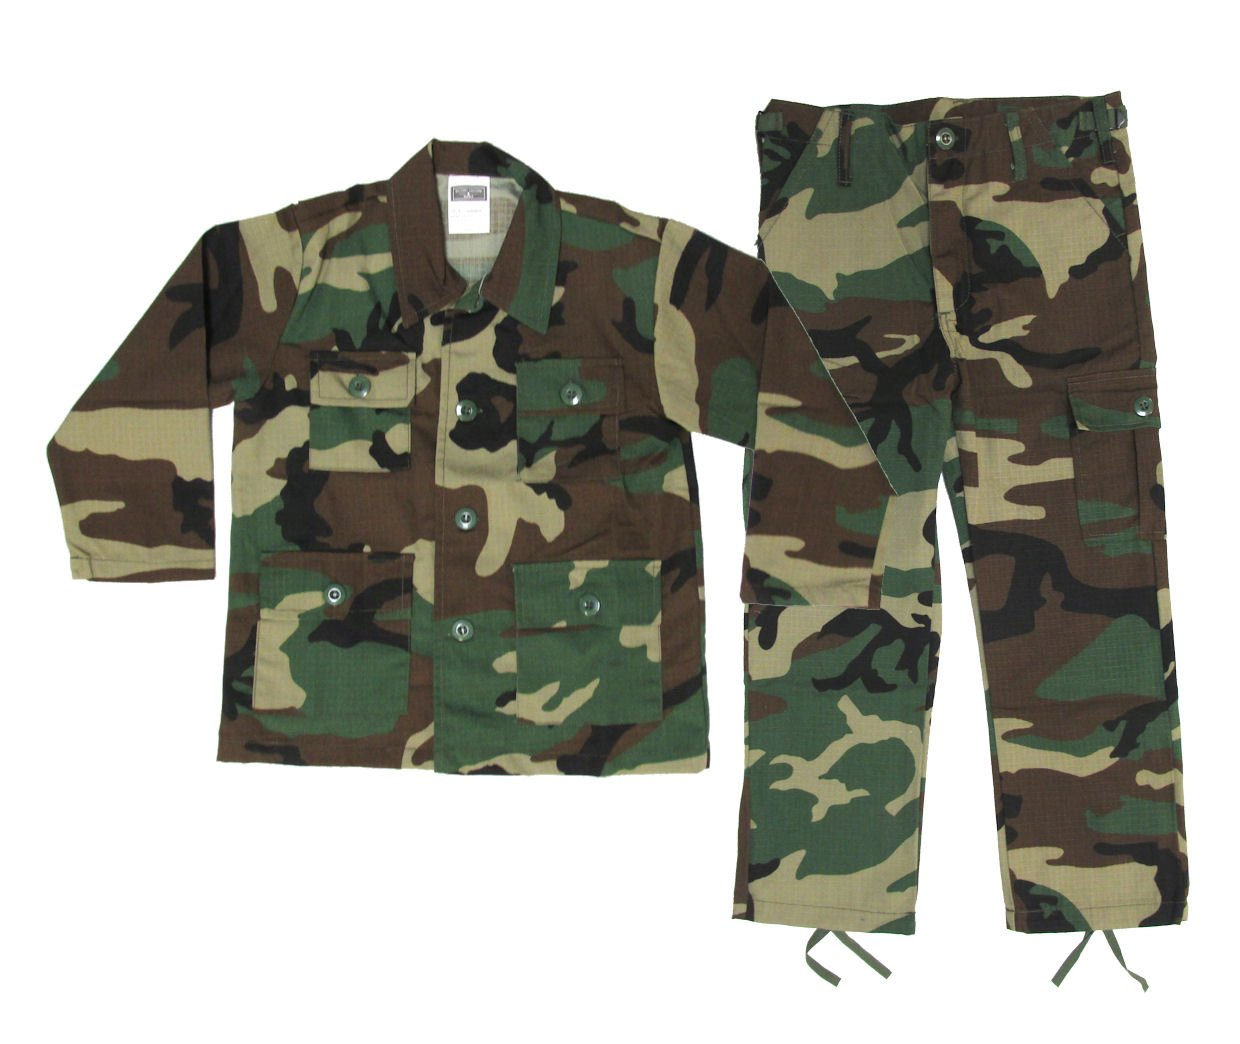 Kids Woodland BDU Uniform 2 Piece Set - Kids Military Costume - Medium by Military Uniform Supply